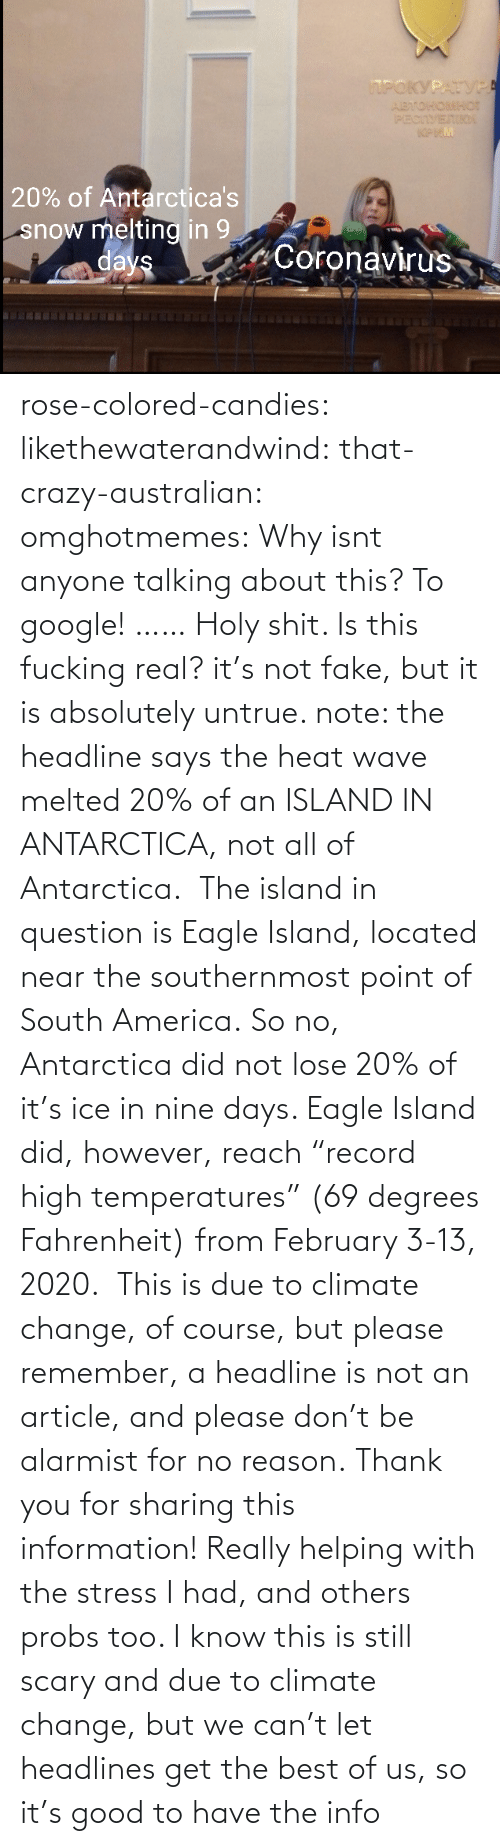 "ice: rose-colored-candies: likethewaterandwind:   that-crazy-australian:  omghotmemes:  Why isnt anyone talking about this?   To google!  ……   Holy shit. Is this fucking real?   it's not fake, but it is absolutely untrue. note: the headline says the heat wave melted 20% of an ISLAND IN ANTARCTICA, not all of Antarctica.  The island in question is Eagle Island, located near the southernmost point of South America. So no, Antarctica did not lose 20% of it's ice in nine days. Eagle Island did, however, reach ""record high temperatures"" (69 degrees Fahrenheit) from February 3-13, 2020.  This is due to climate change, of course, but please remember, a headline is not an article, and please don't be alarmist for no reason.    Thank you for sharing this information! Really helping with the stress I had, and others probs too. I know this is still scary and due to climate change, but we can't let headlines get the best of us, so it's good to have the info"